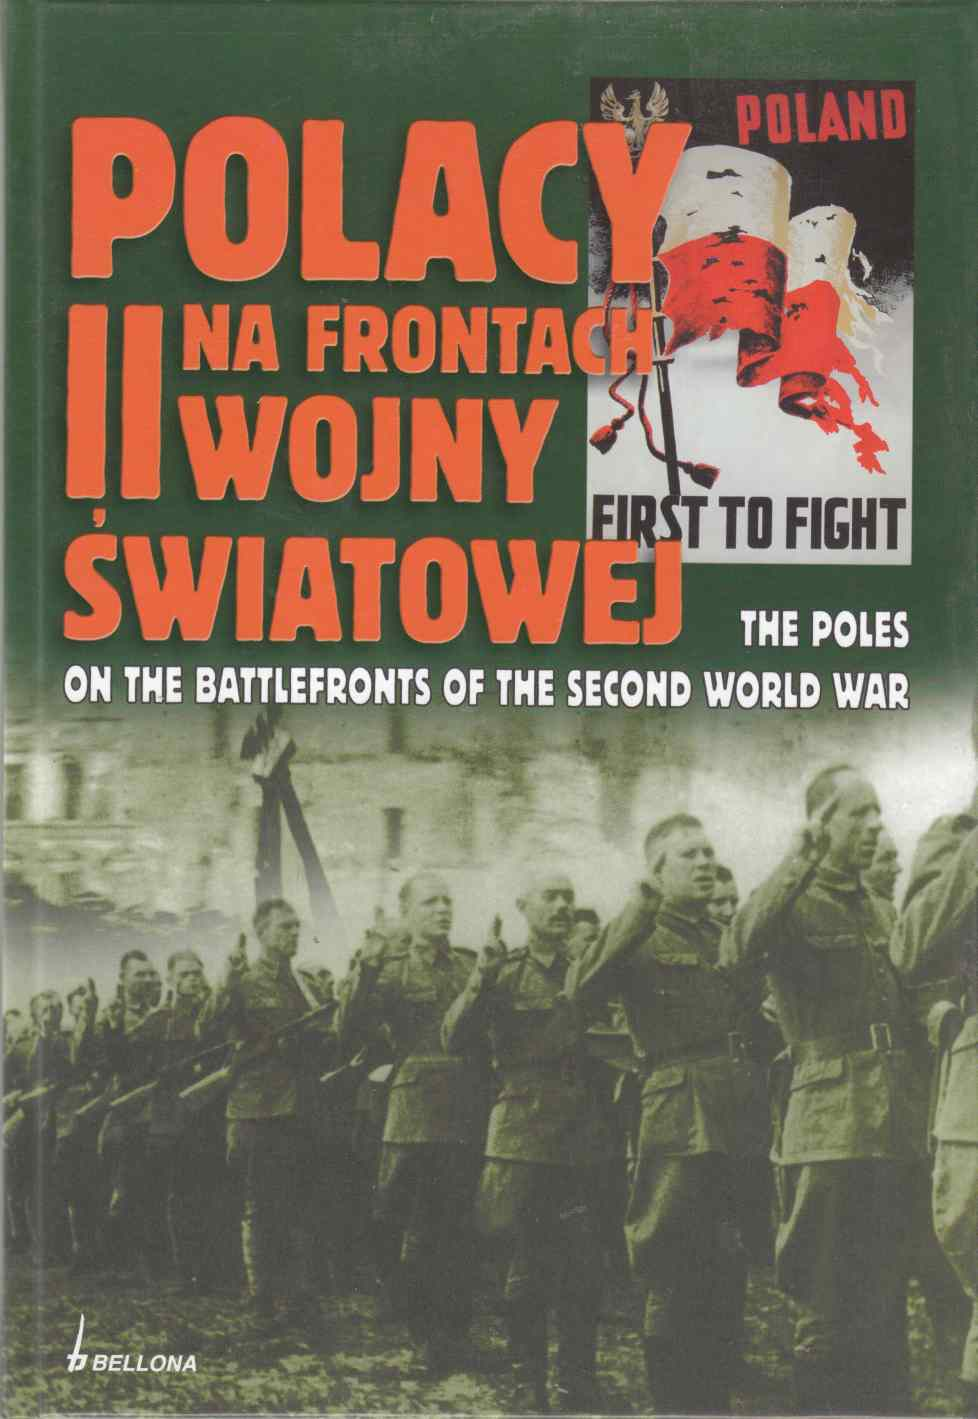 Image for The Poles on the Battlefronts of the Second World War / Polacy Na Frontach II Wojny Swiatowej